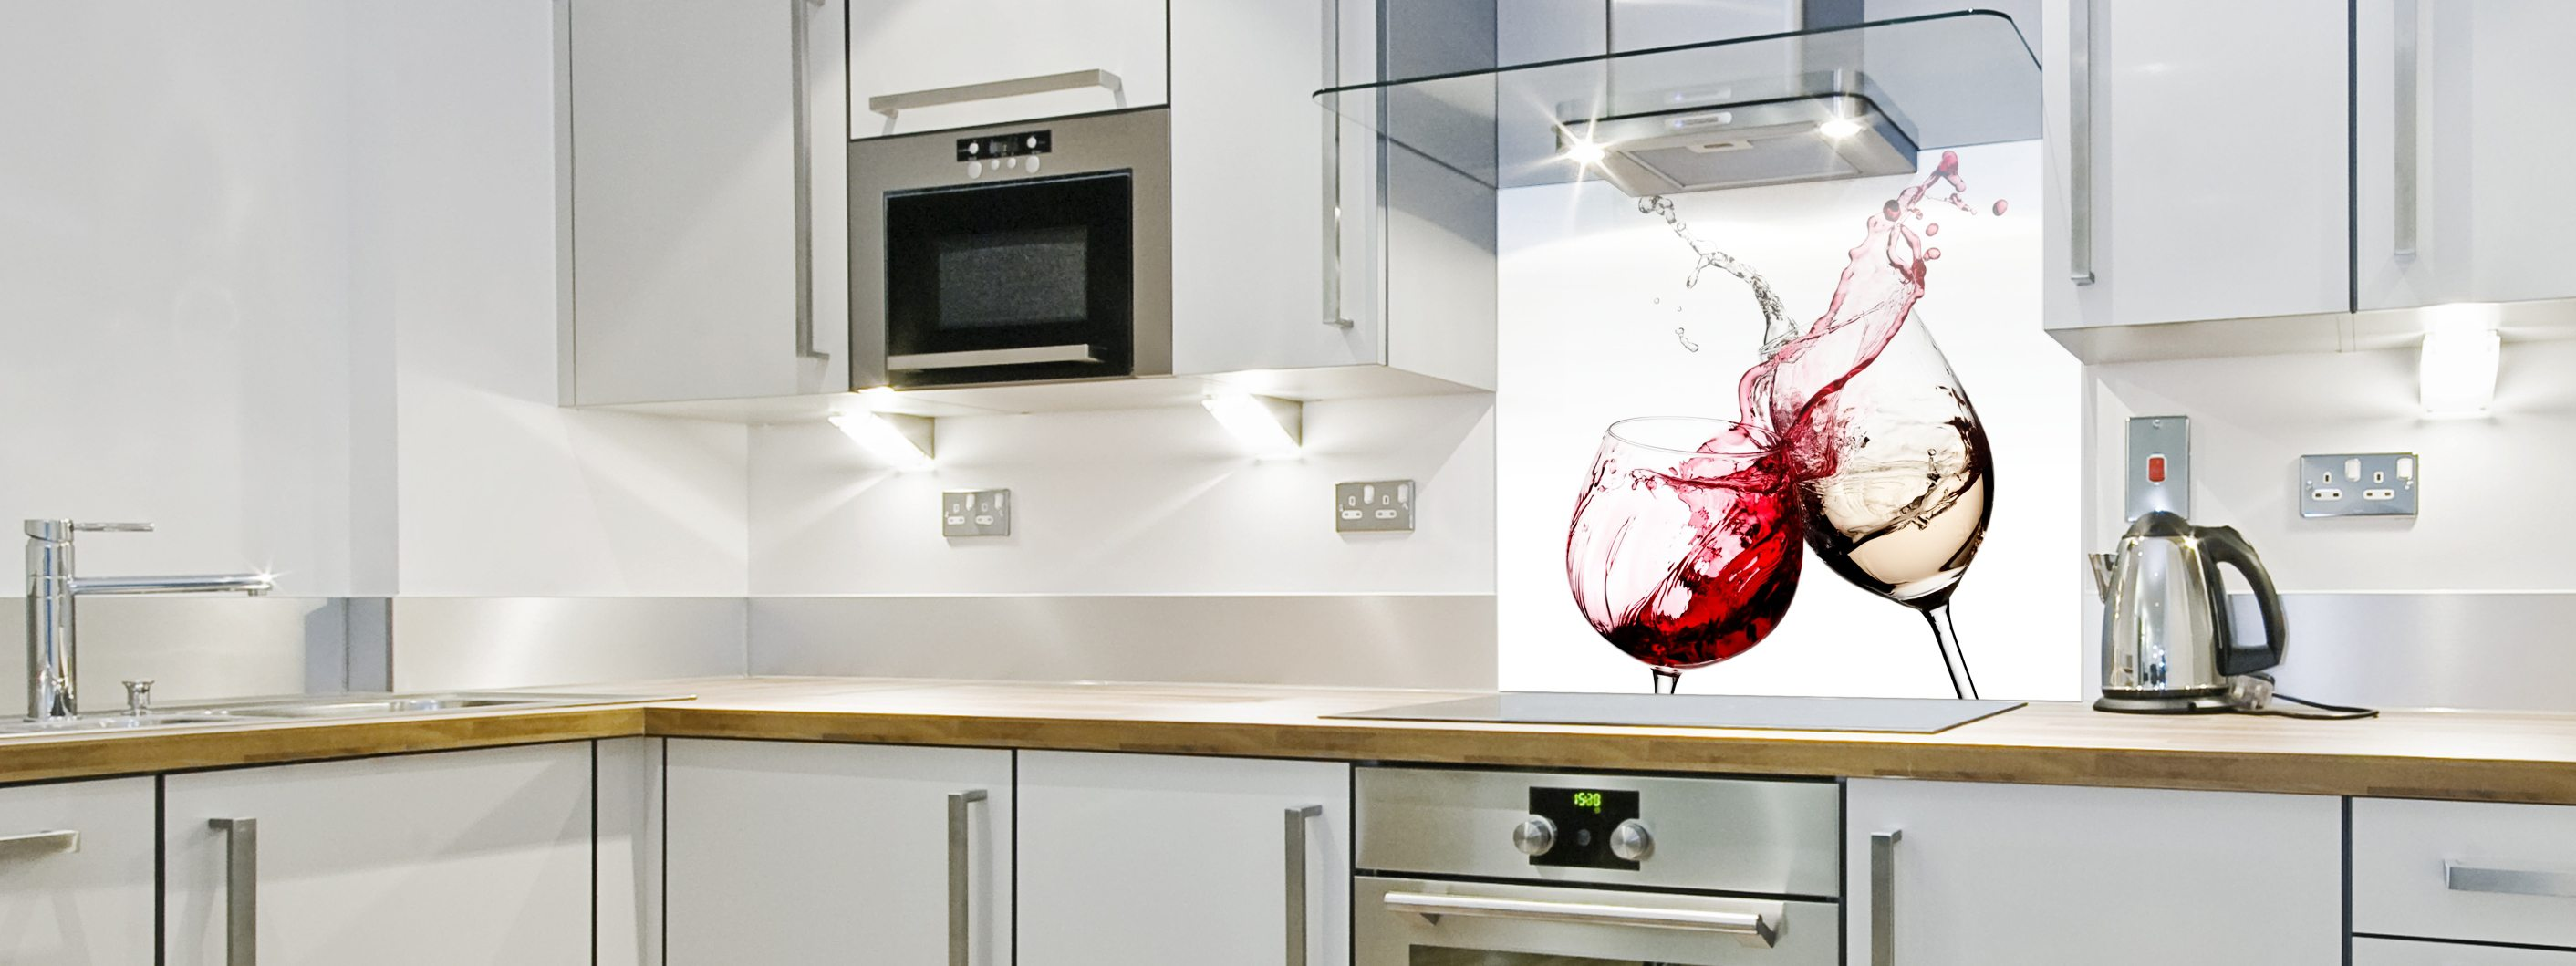 Red Wine Cheers - Printed Splashback